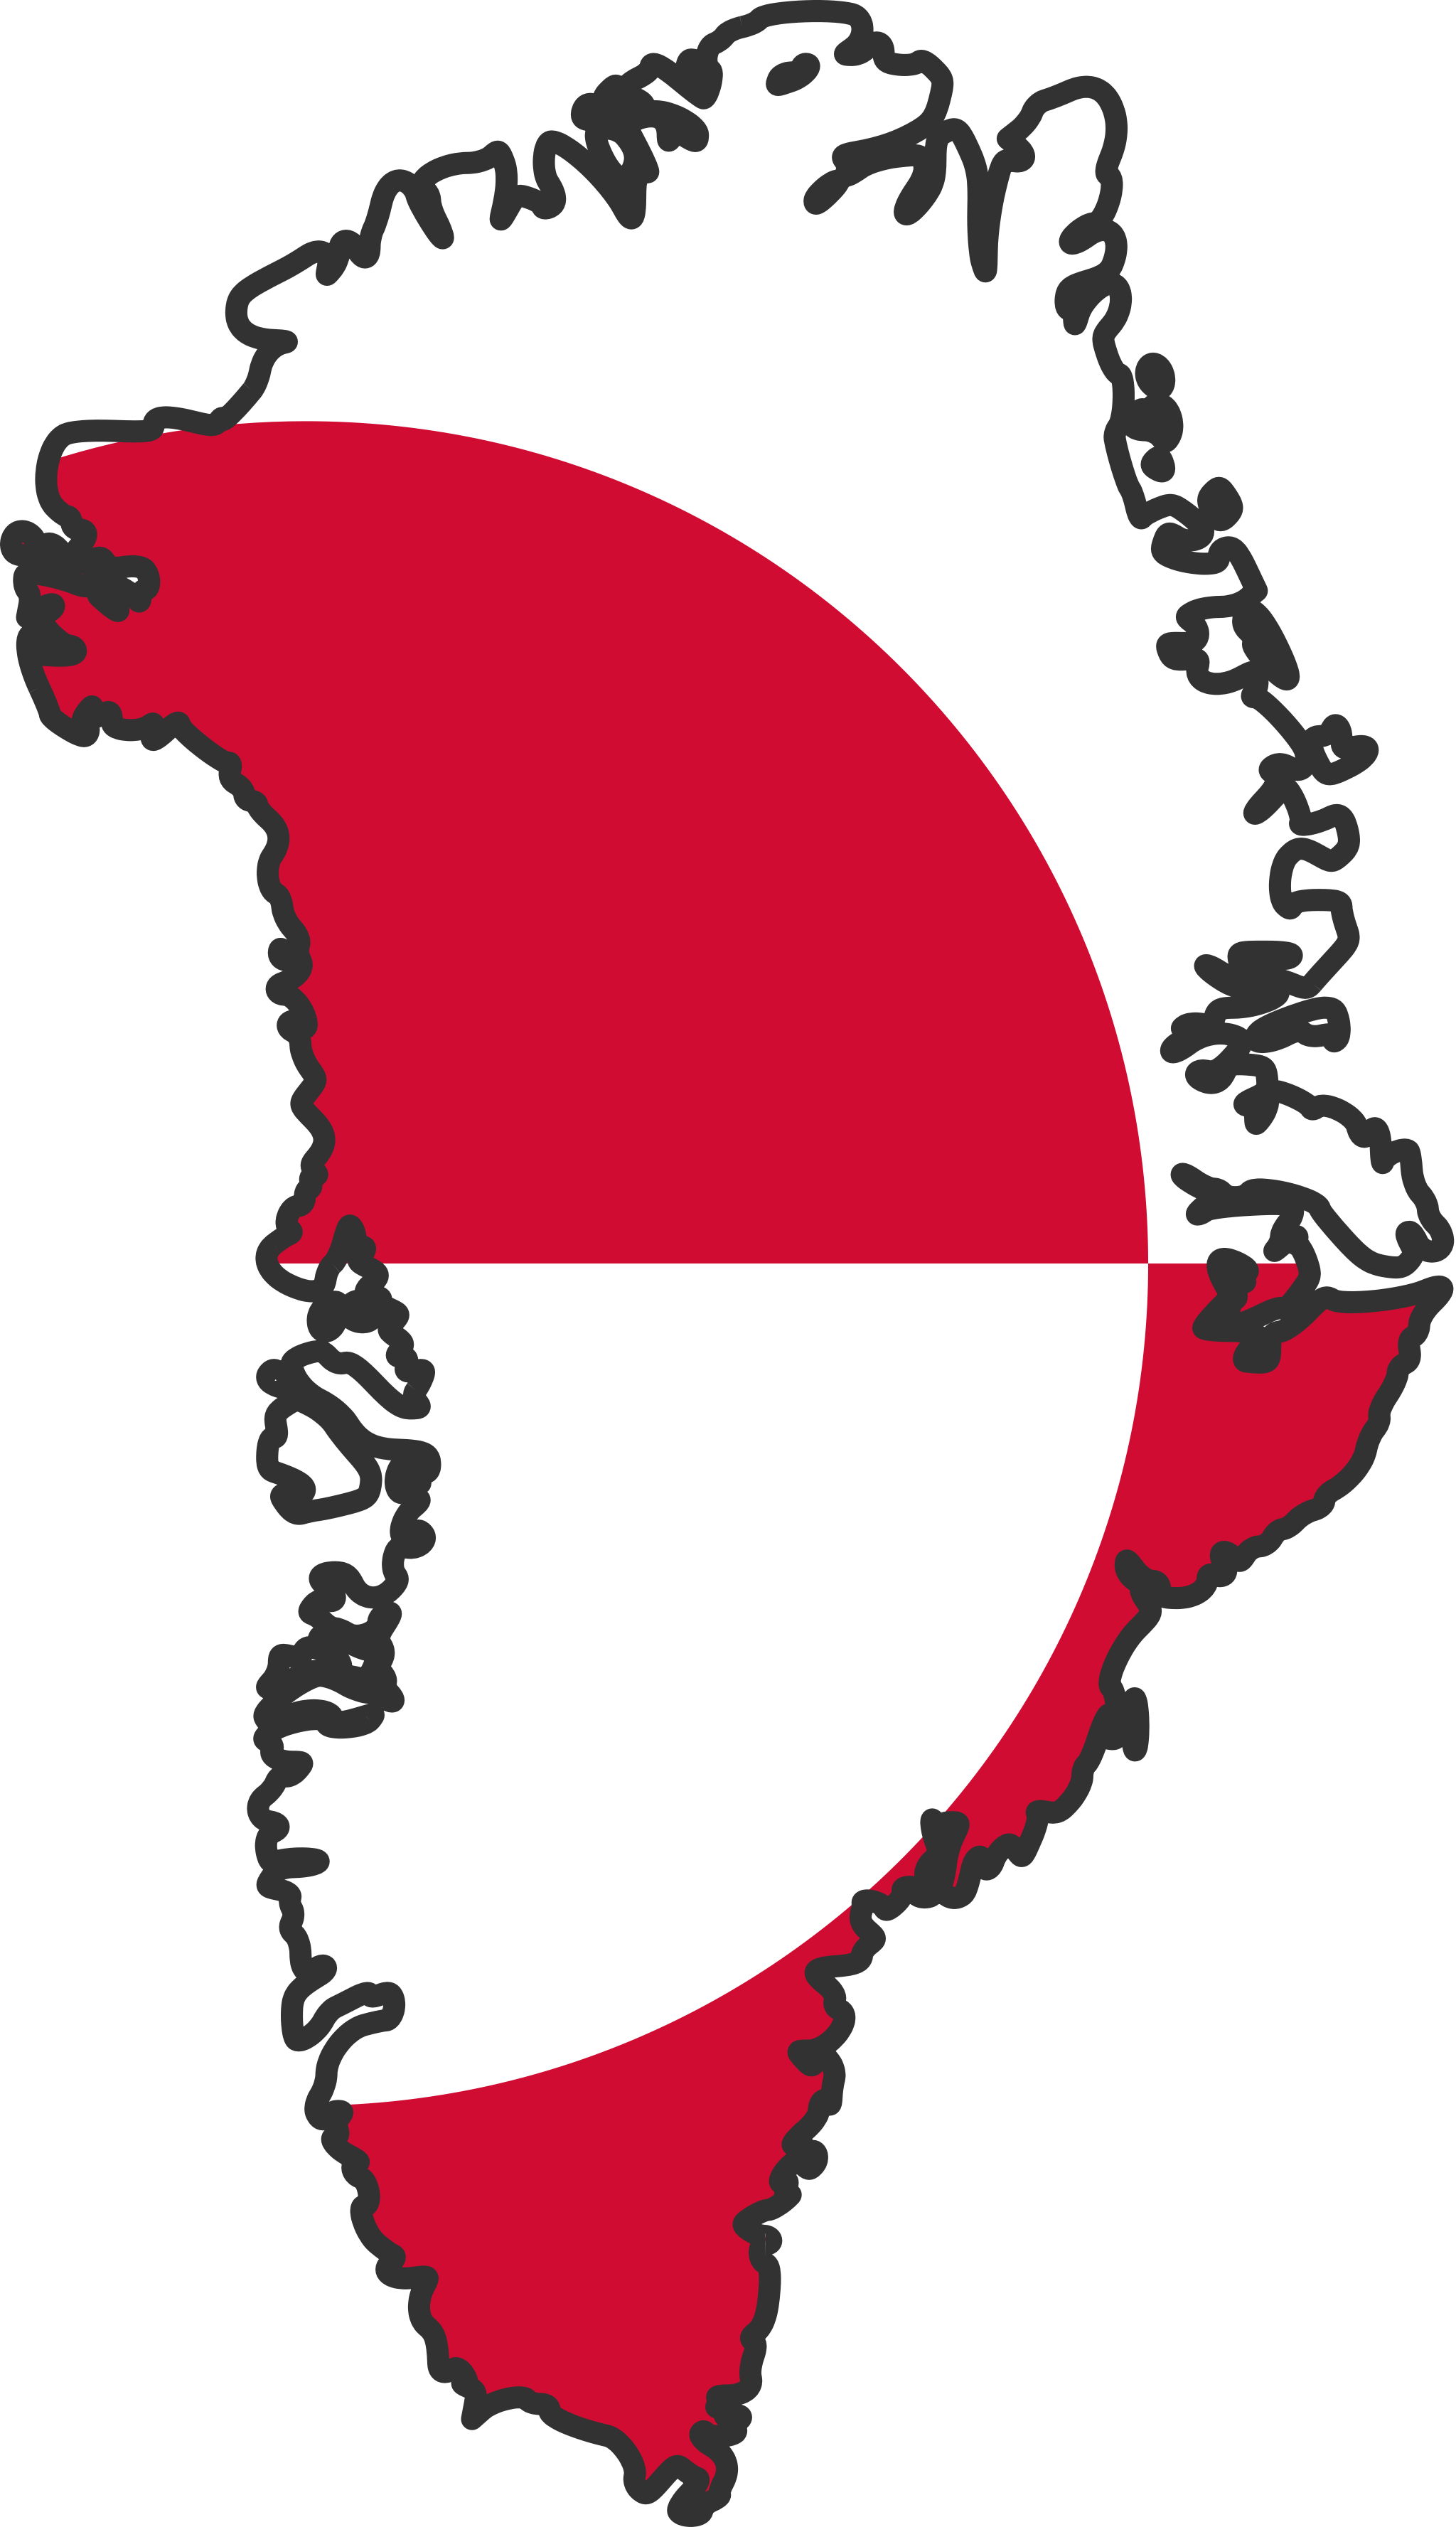 Missions clipart international flag. Greenland map places you